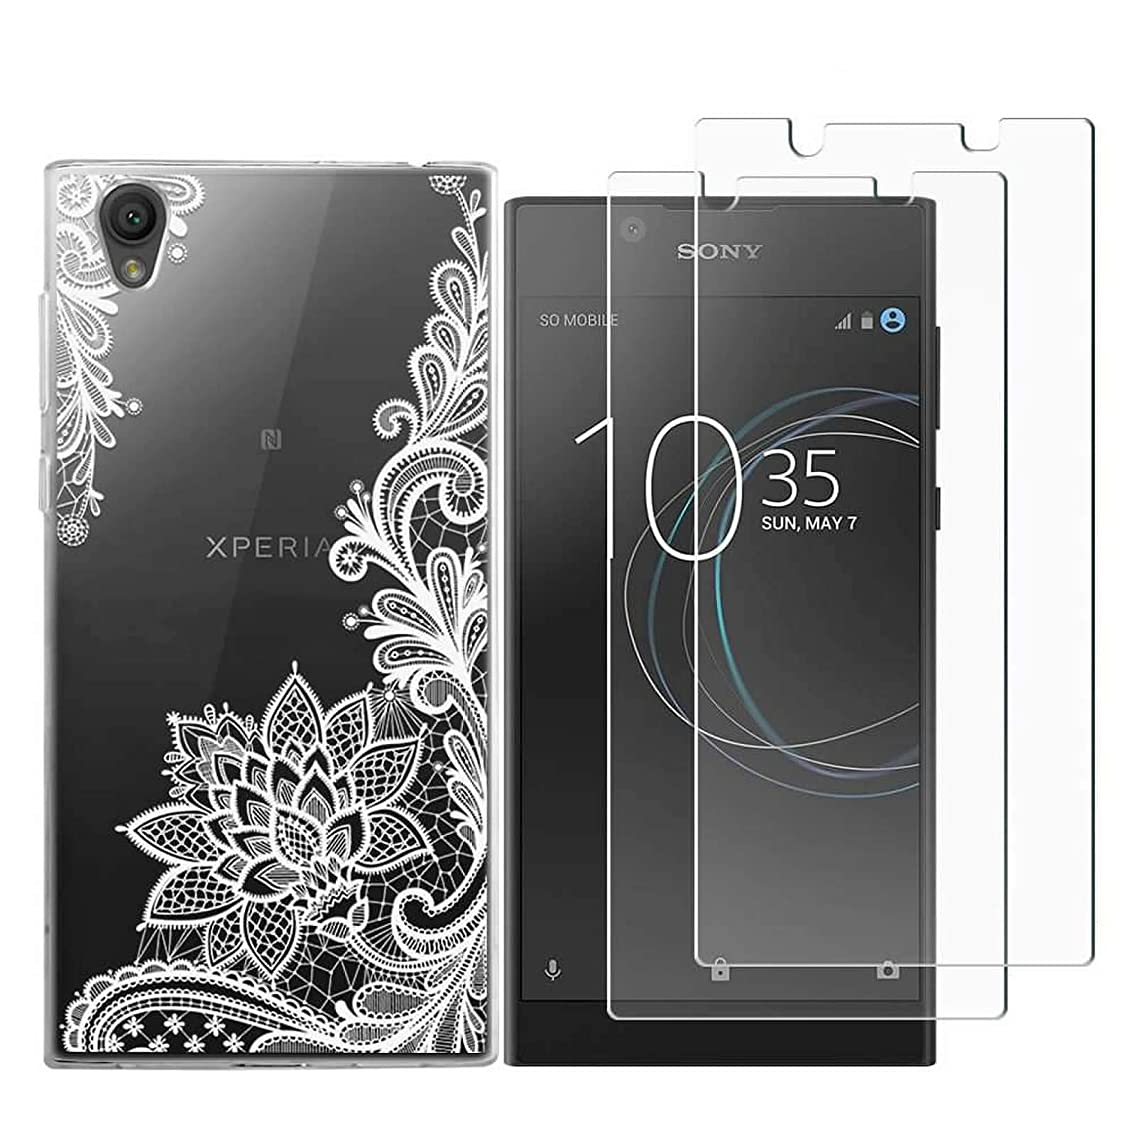 Sony Xperia XA1 Ultra Case with 2 Pack Glass Screen Protector Phone Case for Men Women Girls Clear Soft TPU with Protective Bumper Cover Case for Sony Xperia XA1 Ultra-White Flower